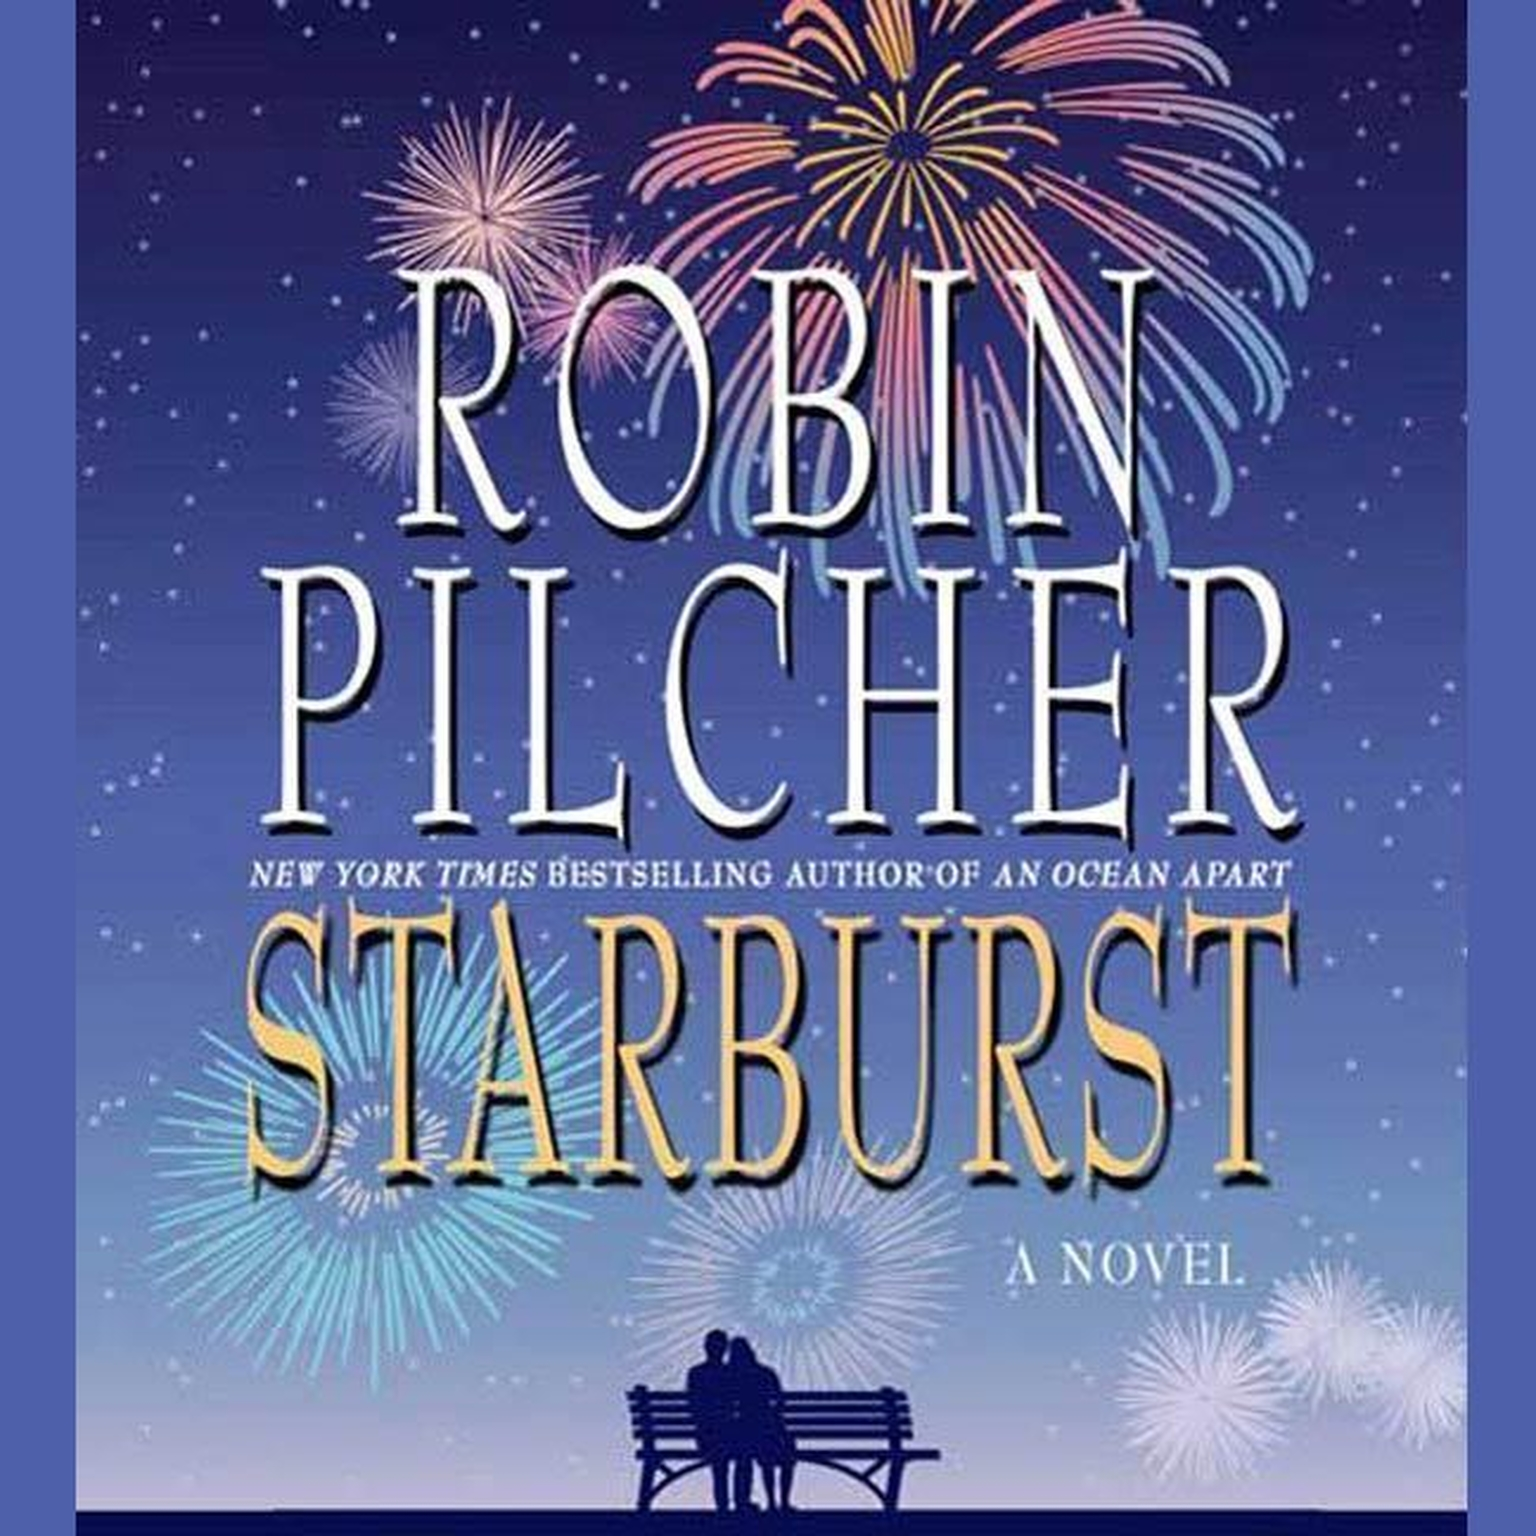 Printable Starburst: A Novel Audiobook Cover Art